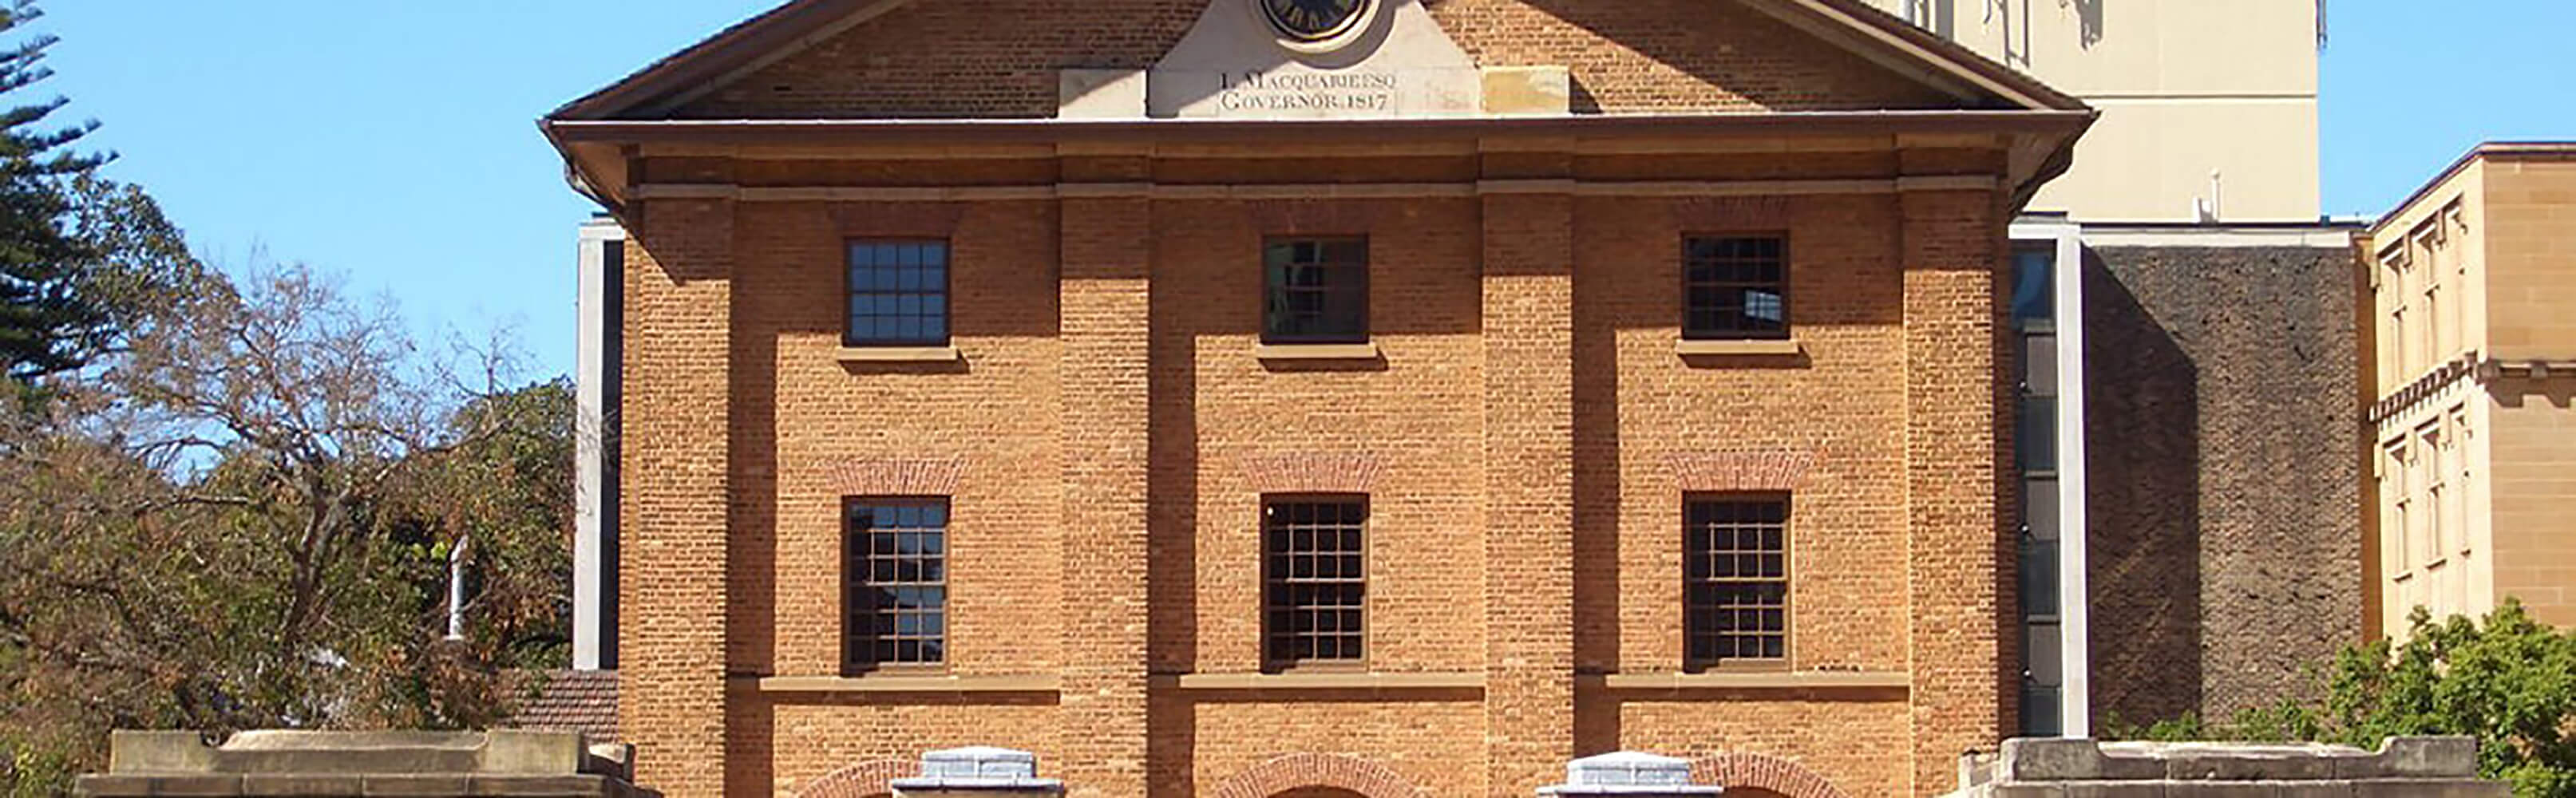 Hyde Park Barracks 1